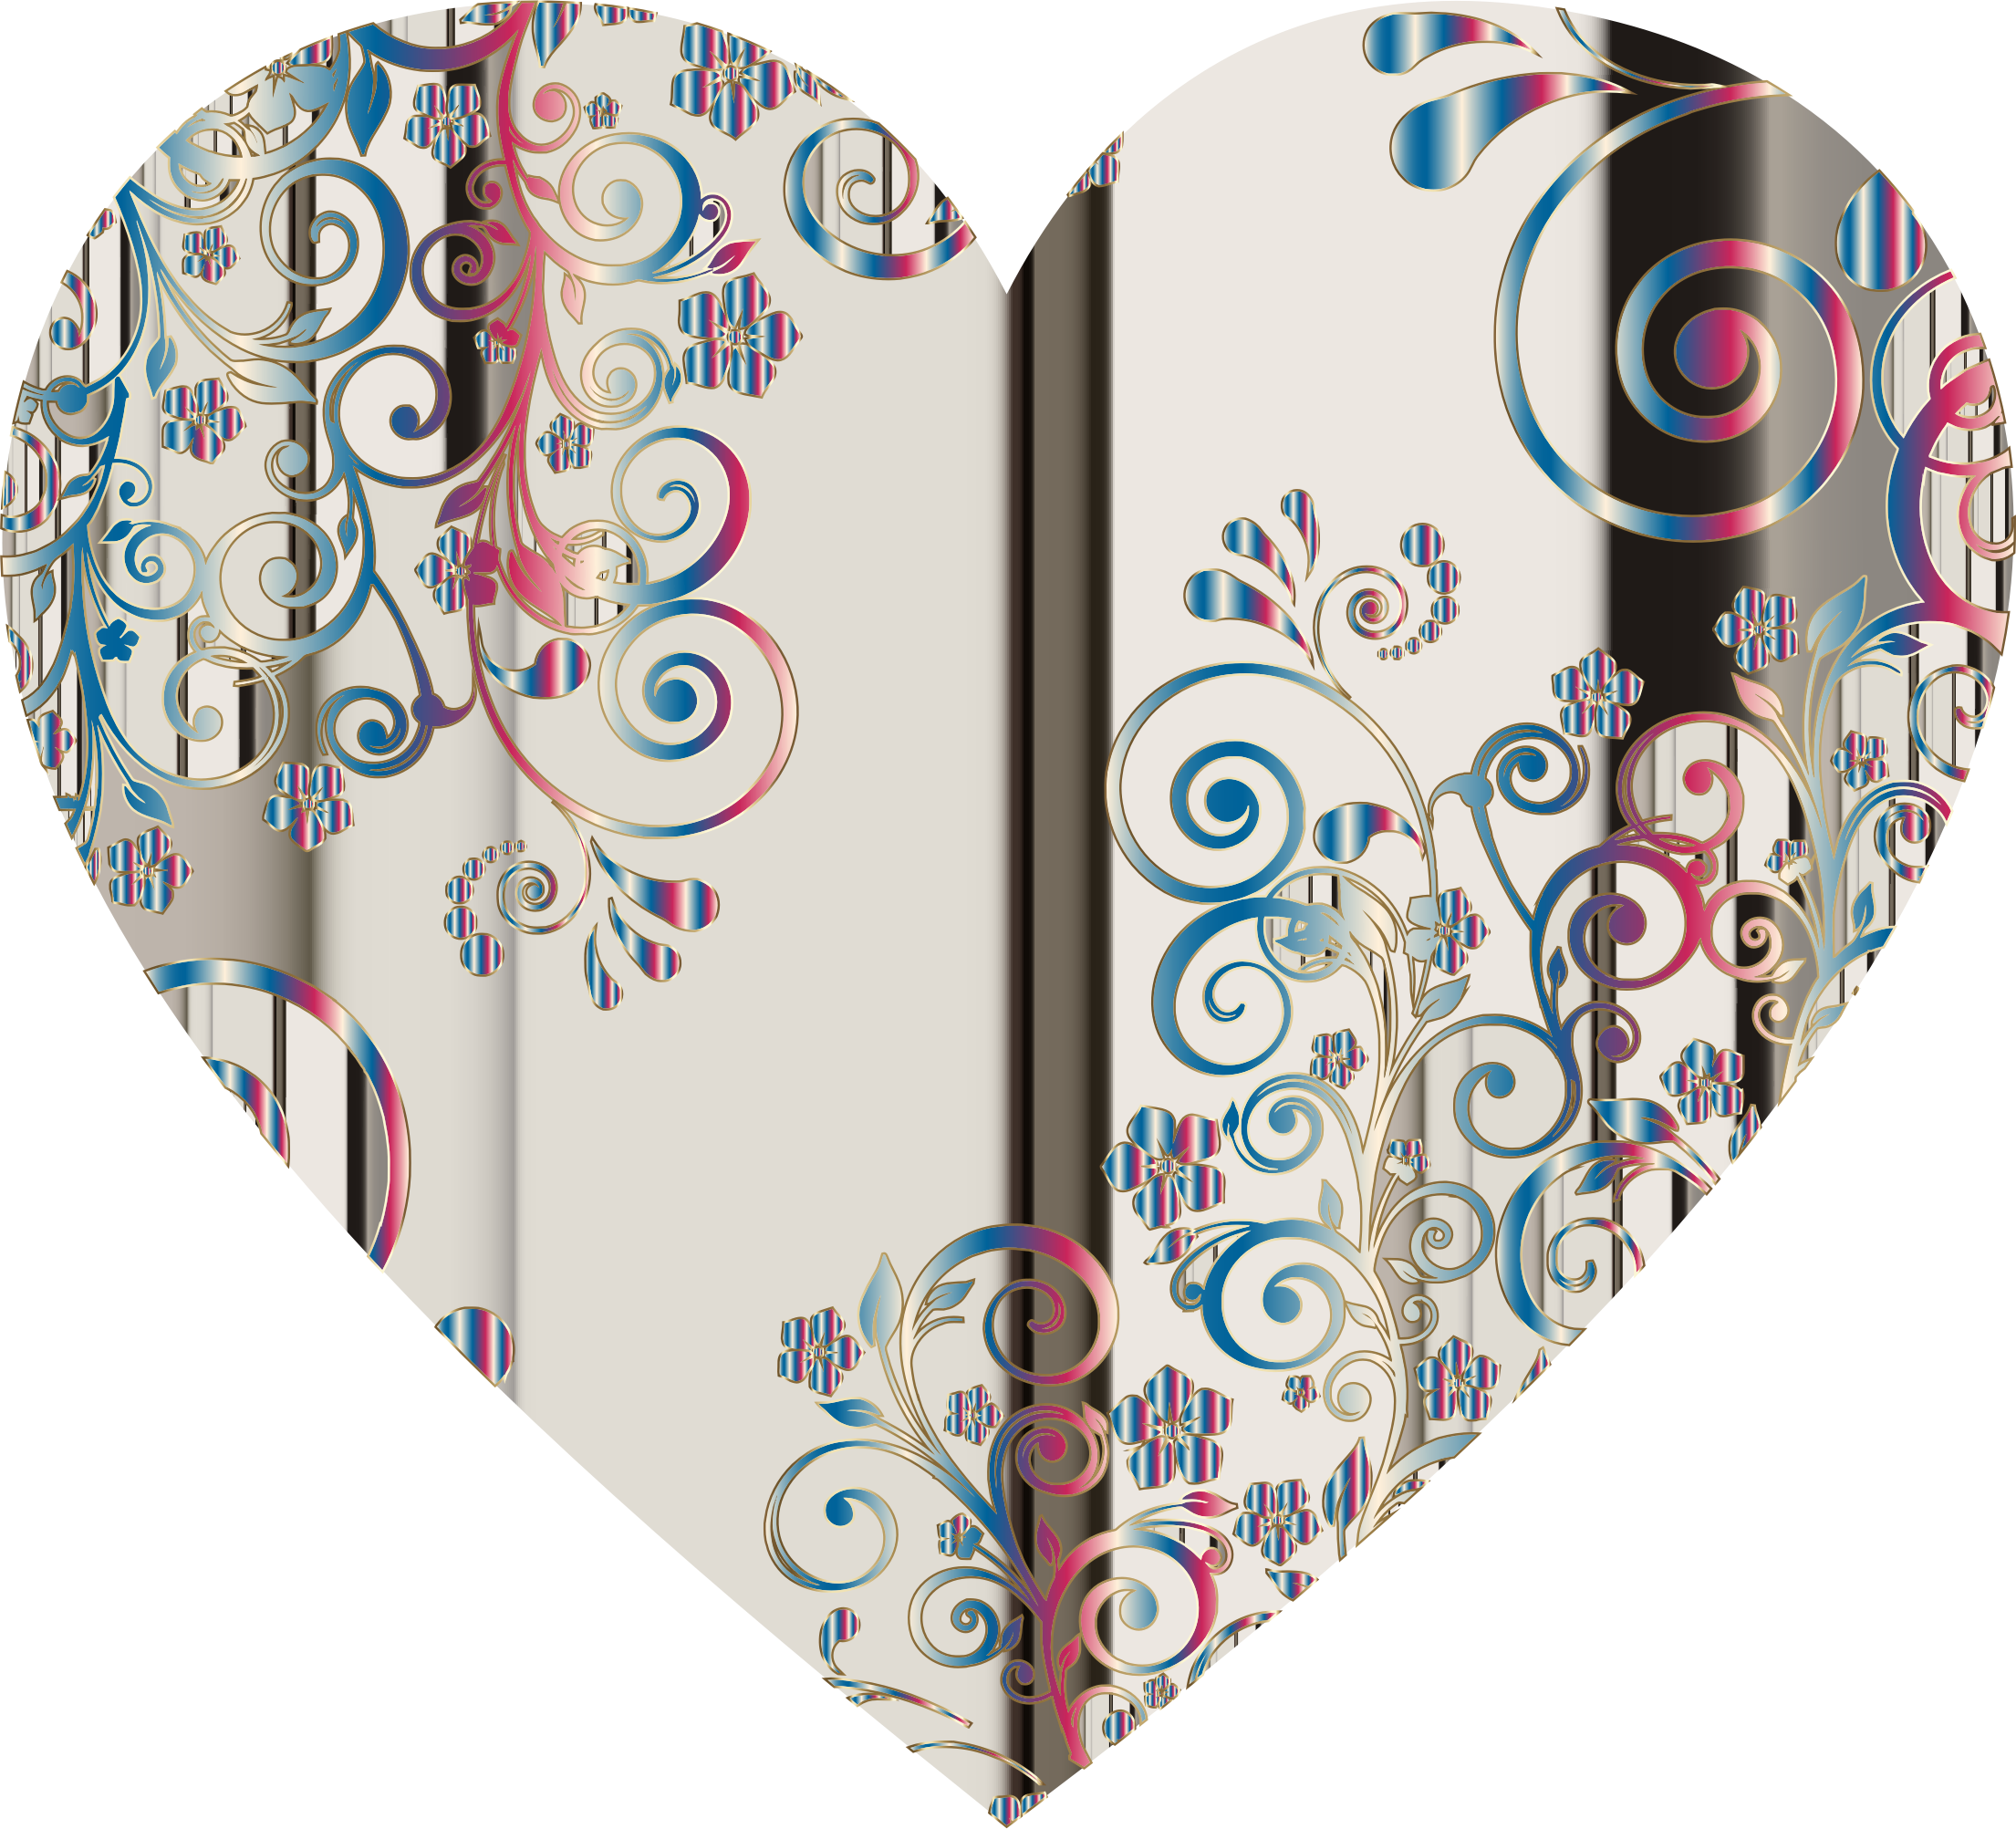 Prismatic Floral Flourish Heart 11 by GDJ